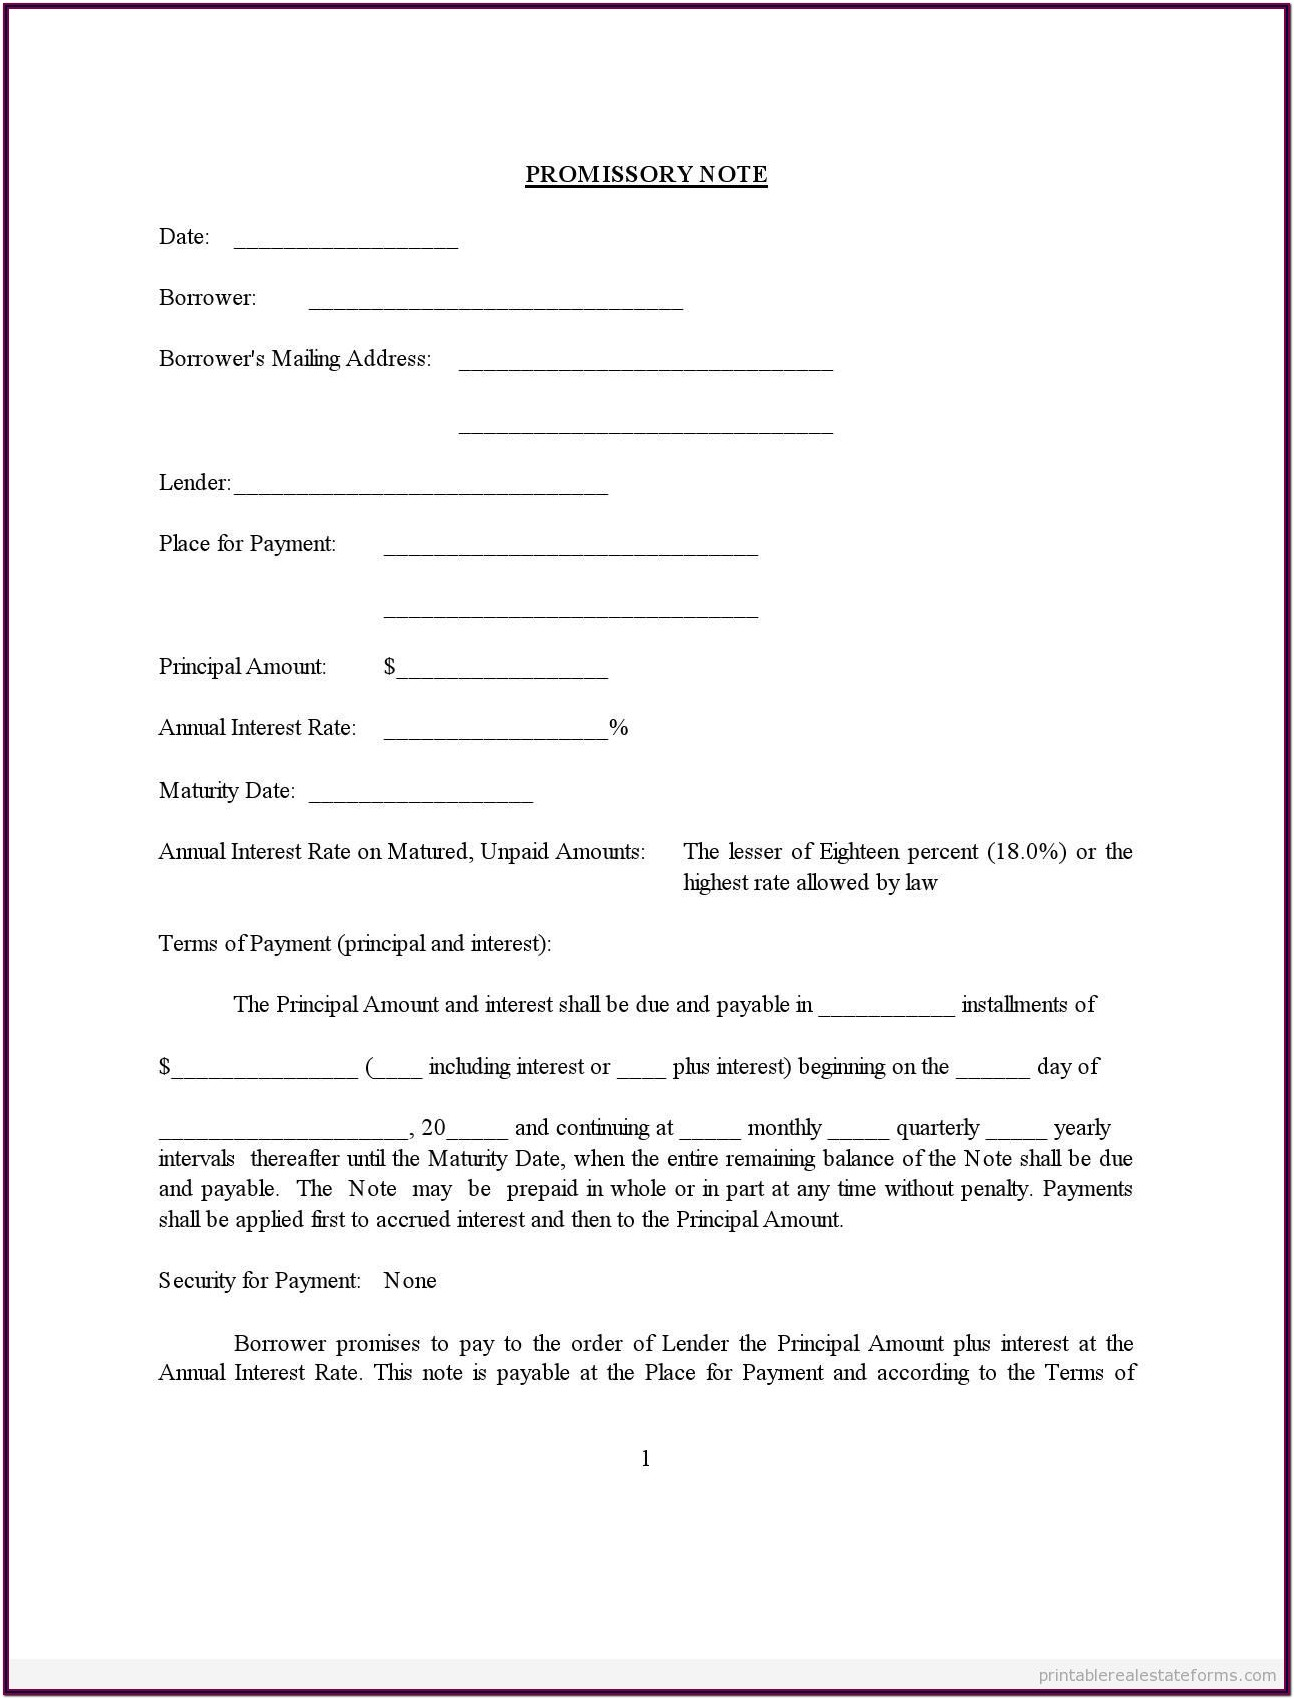 Printable Free Promissory Note Form